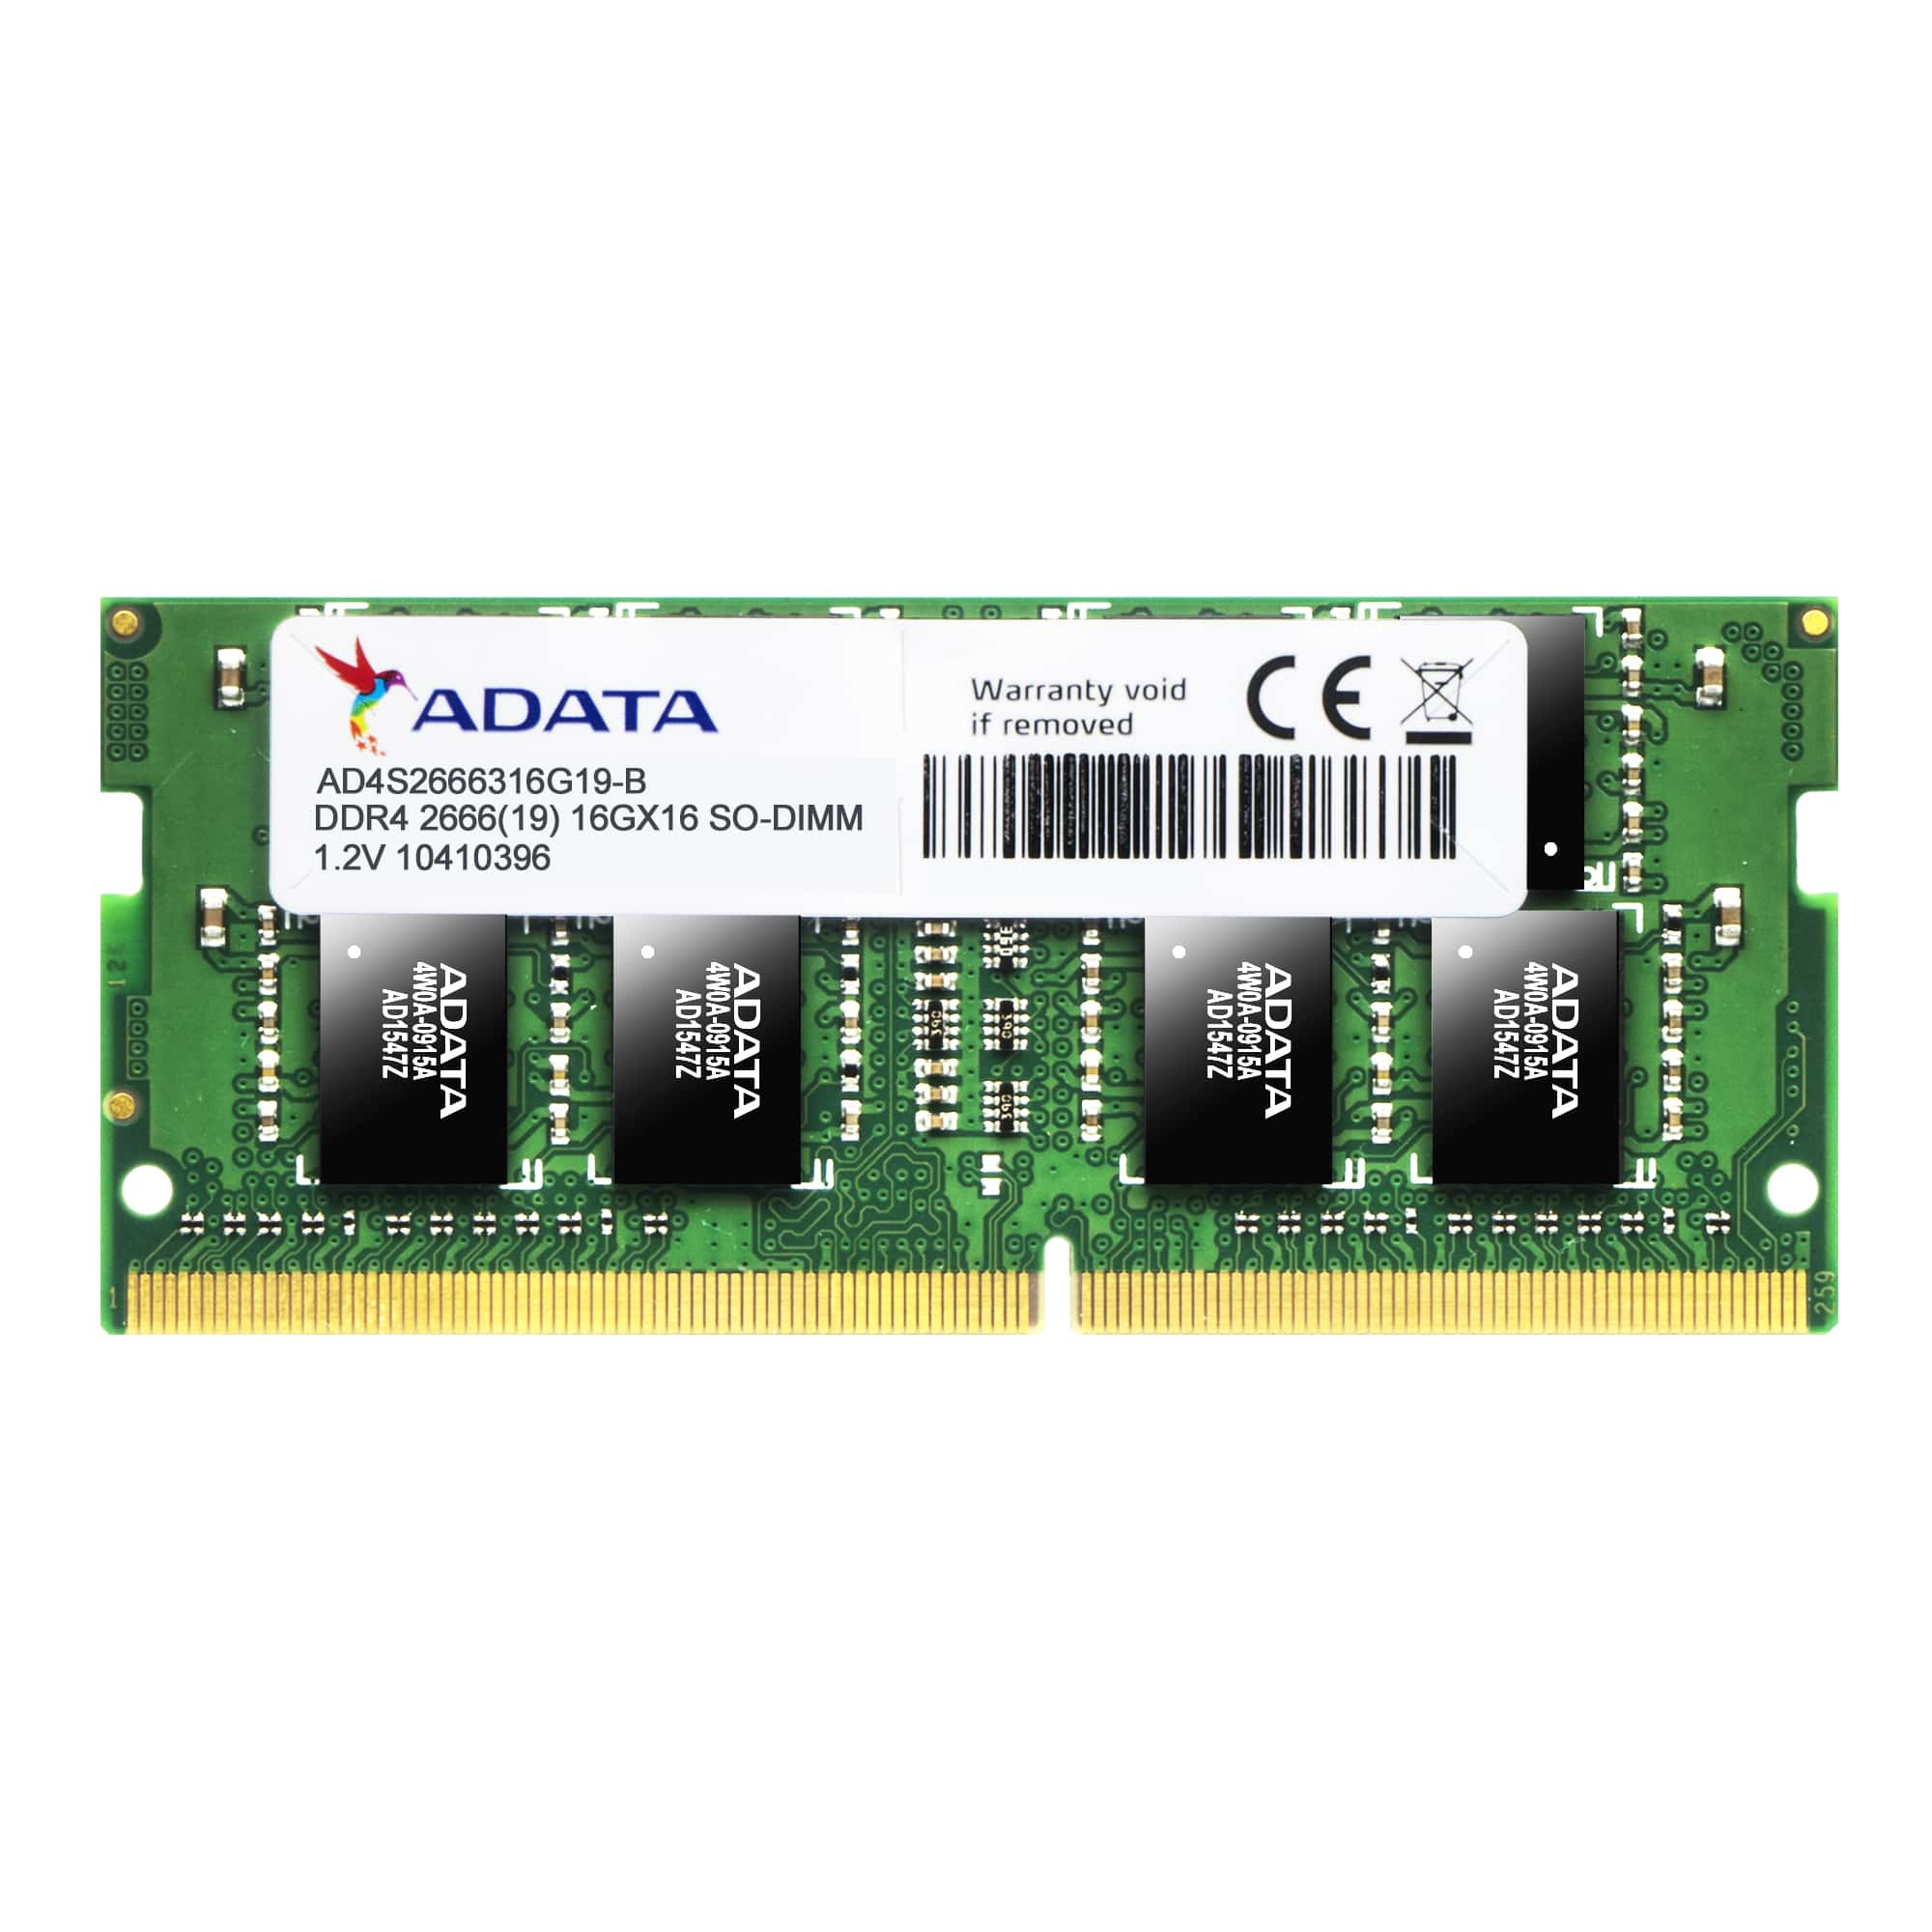 Memorie Notebook A-Data AD4S2666J4G19-S 4GB DDR4 2666MHz CL19